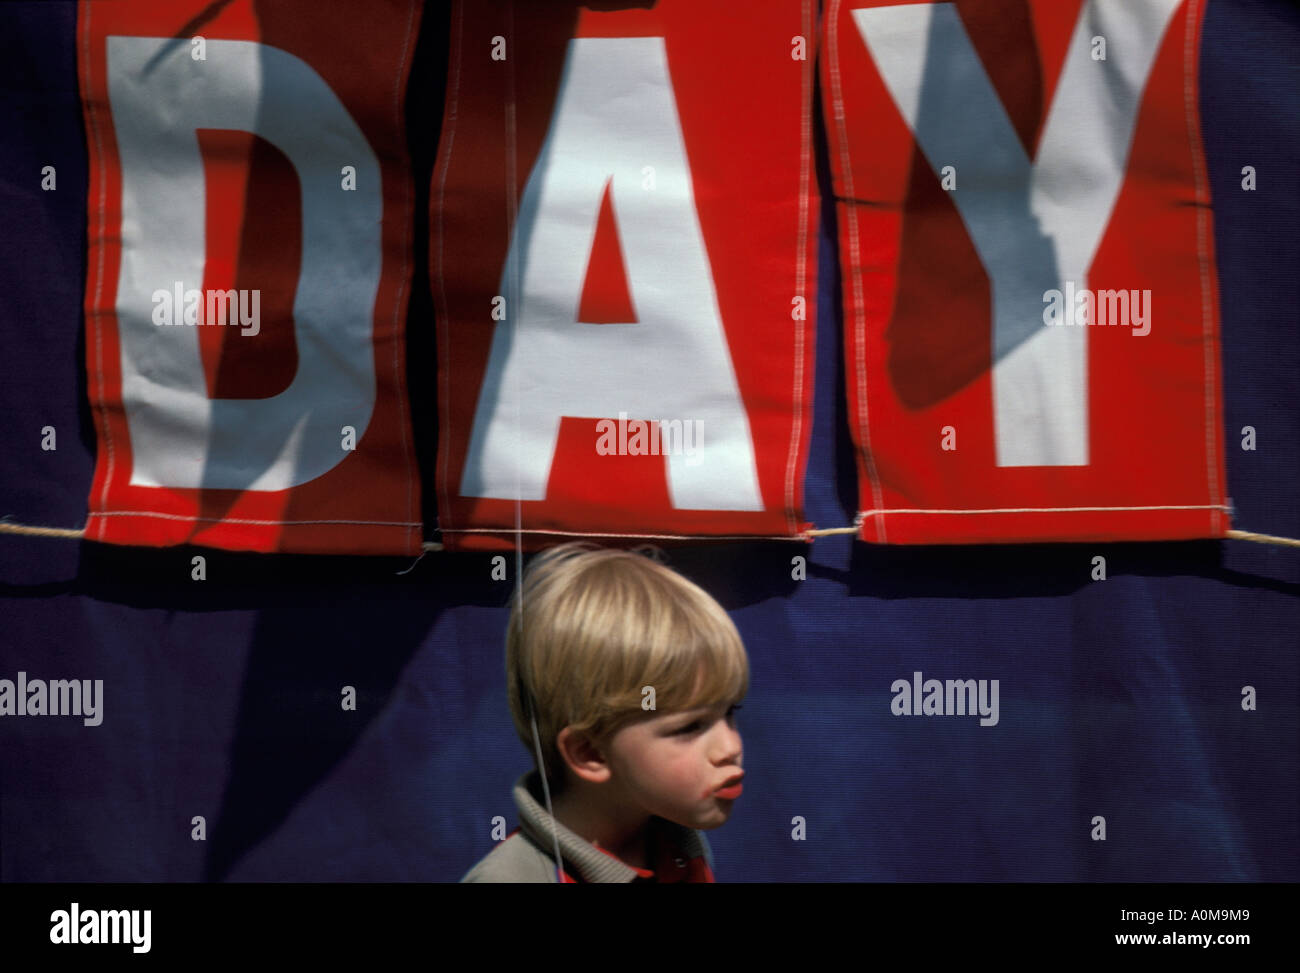 1 one young boy in front of speakers platform Loyalty day parade small town america Stock Photo